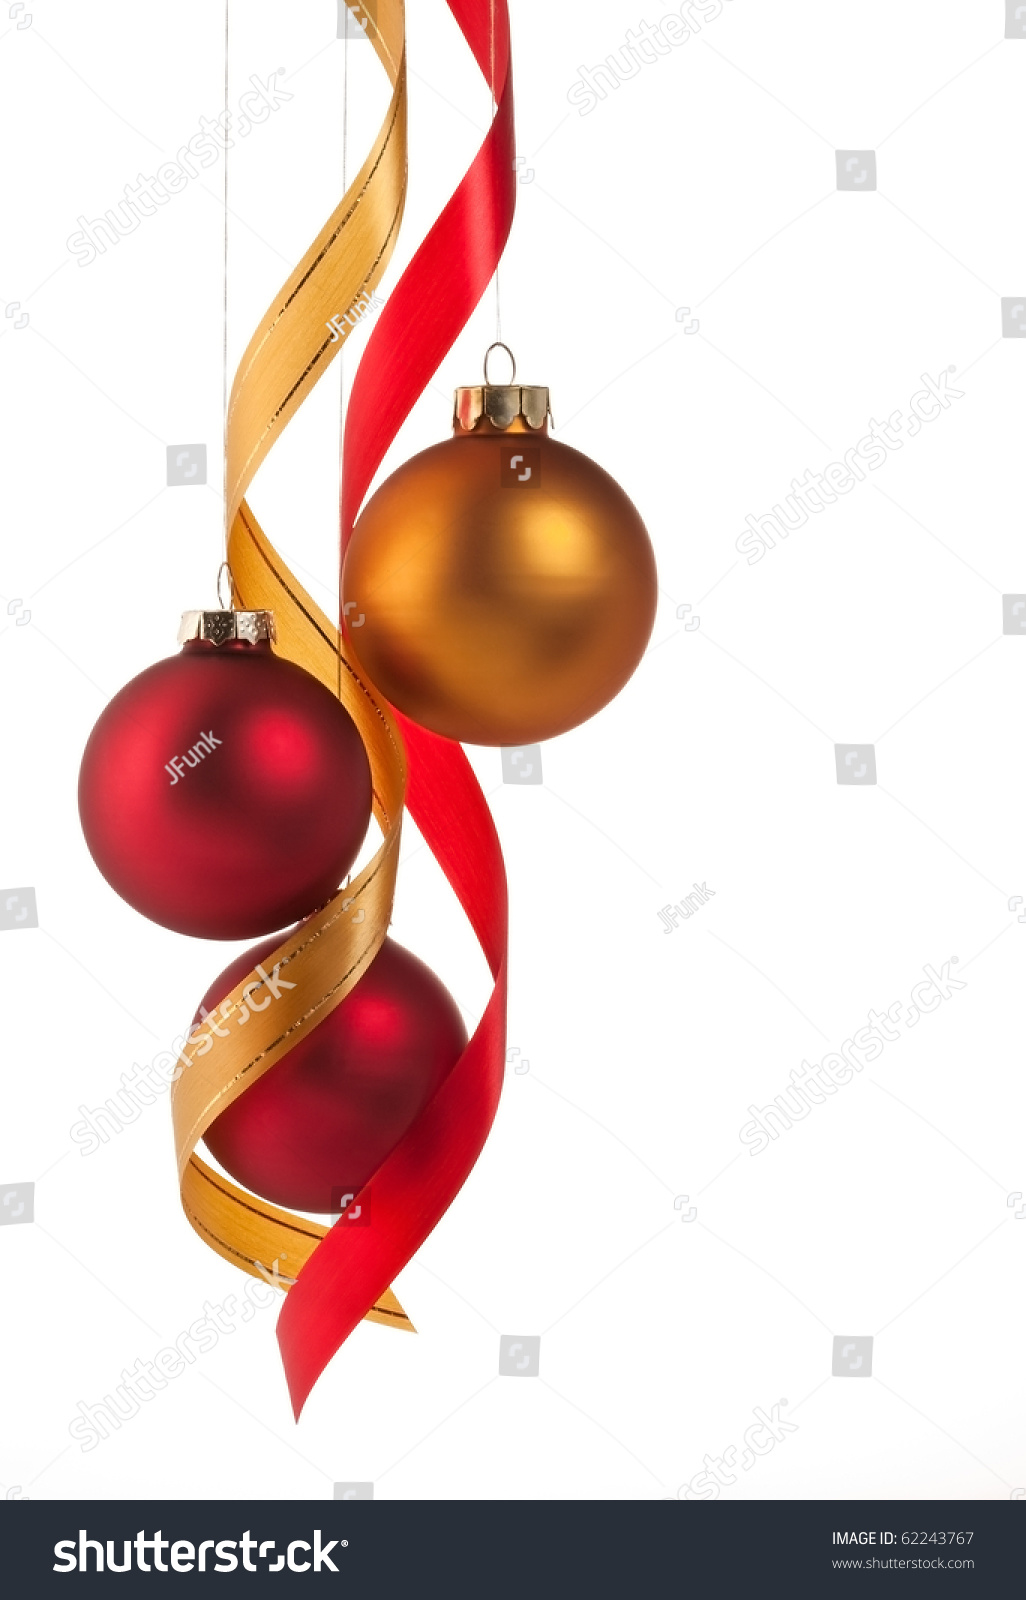 Red and gold christmas ornaments - Traditional Red And Gold Christmas Ball Ornaments With Ribbons On White Preview Save To A Lightbox